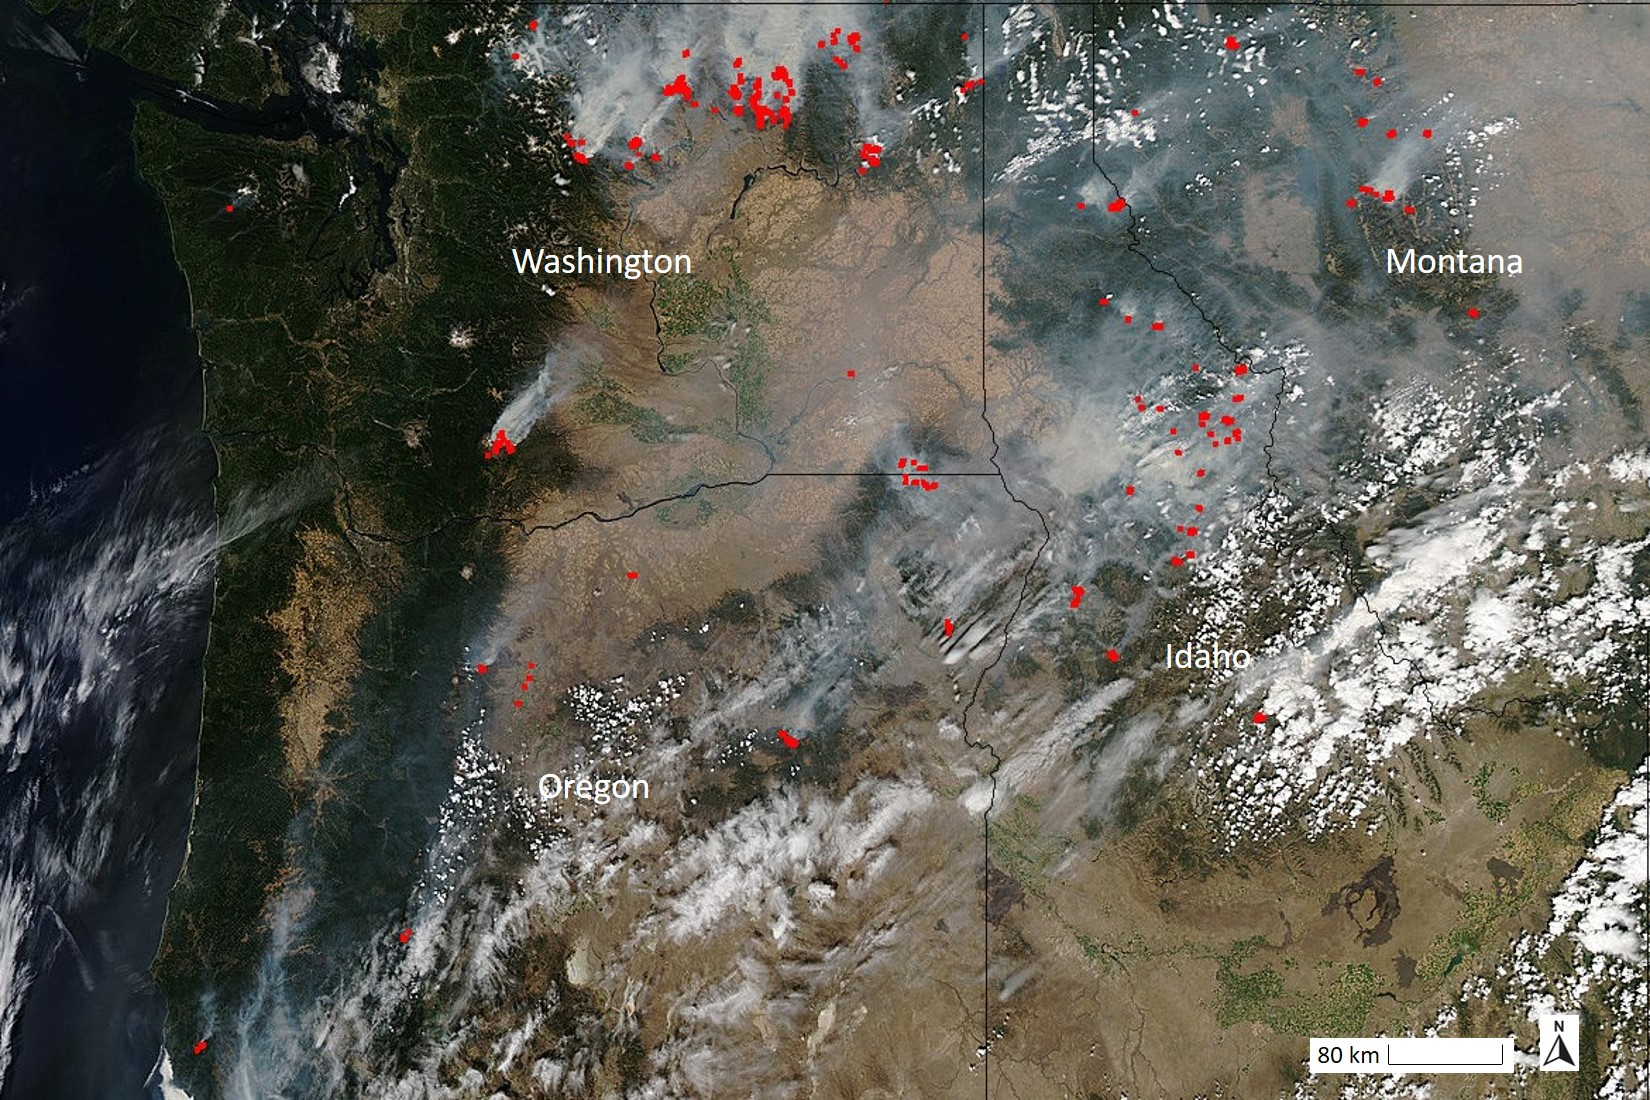 Red dots highlight the location of wildfires, all of which have white smoke coming from them